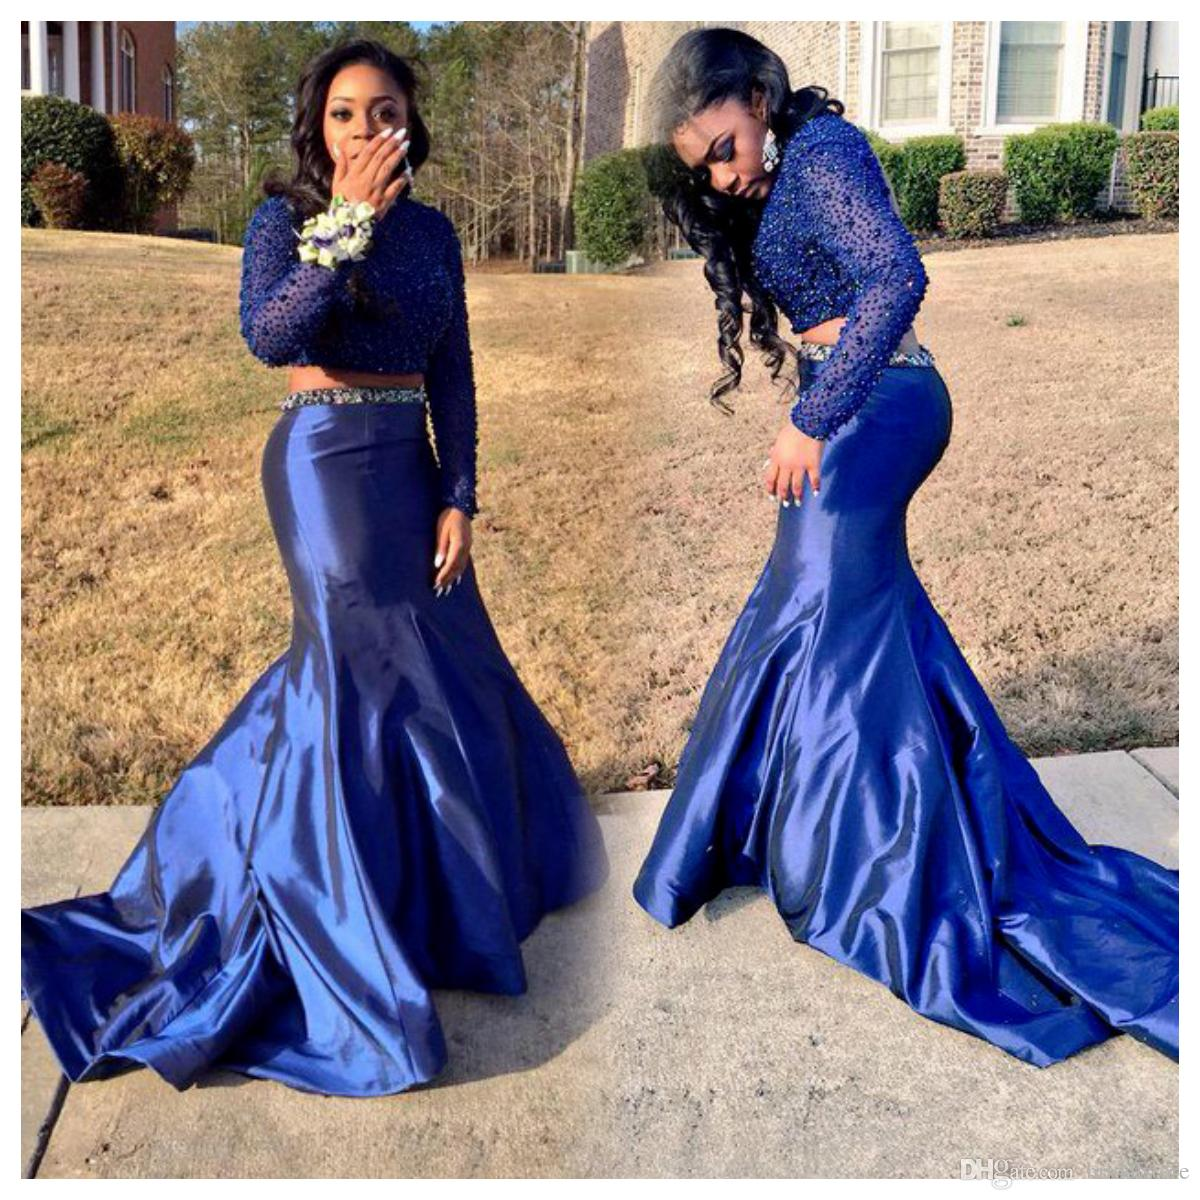 872ab4cbad8 Vintage Blue Two Piece Prom Dresses Crop Top Beaded Plus Size Evening Gowns  With Sleeve Taffeta Fishtail Sexy African Dresses 2018 Online Discount Prom  ...